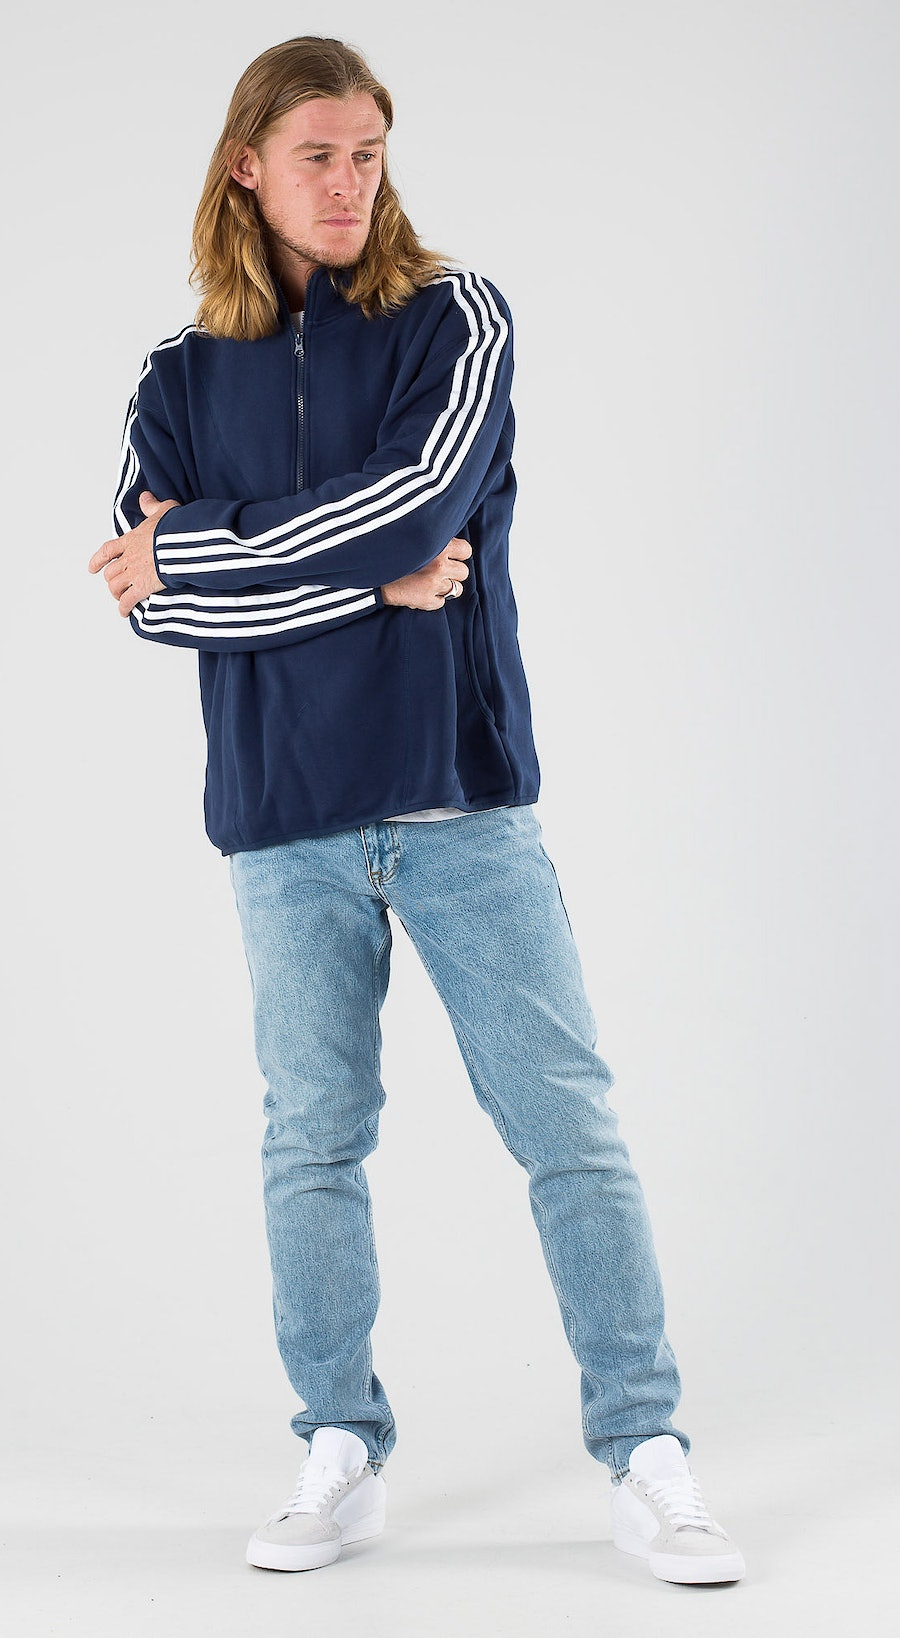 Adidas Skateboarding Terry Track Collegiate Navy/White Outfit Multi